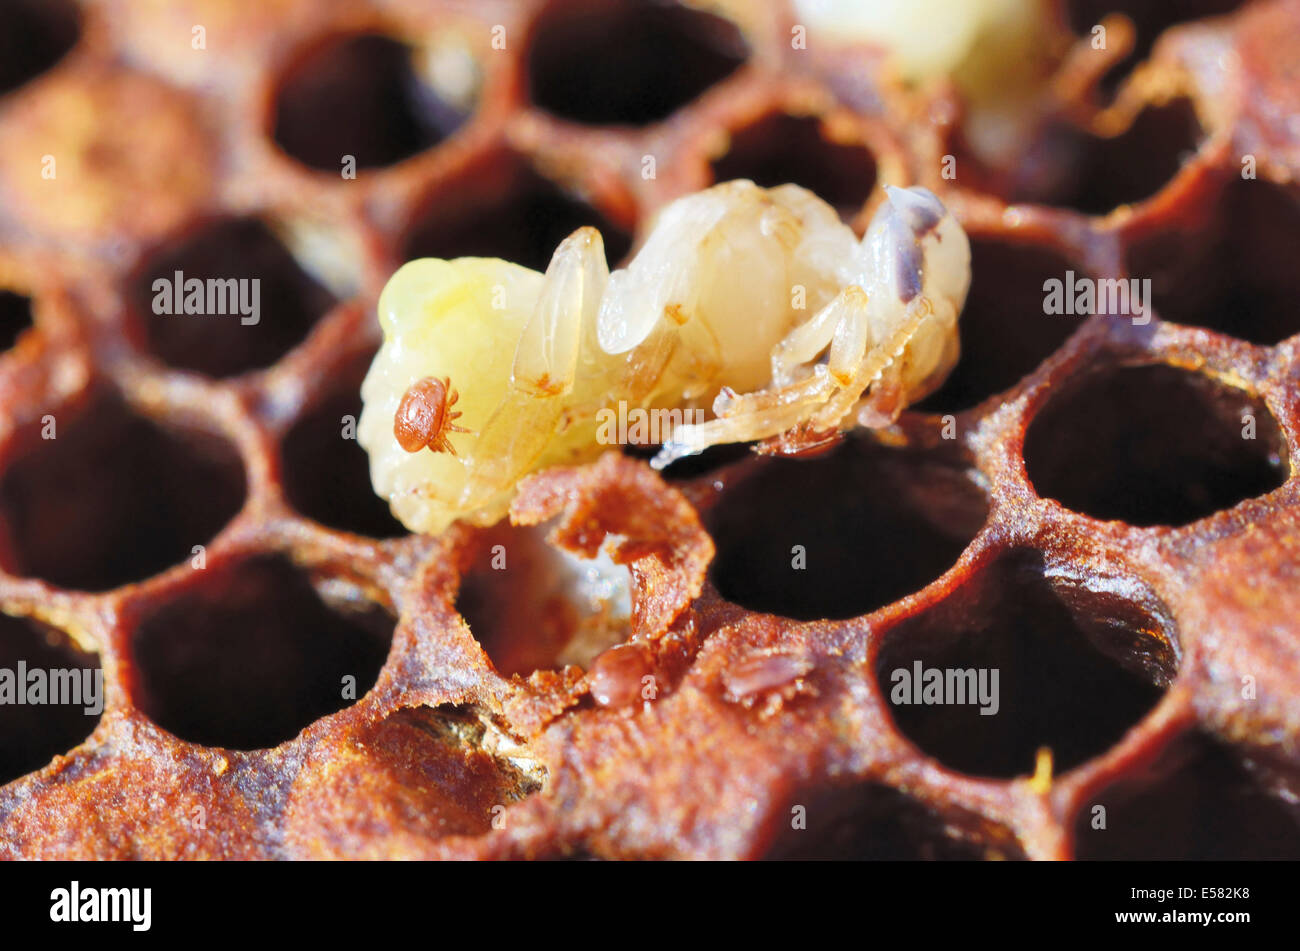 Bee colony infested with Varroa Honey Bee Mites (Varroa destructor, syn. Jacobsoni), mite on a Bee larva (Apis mellifera - Stock Image